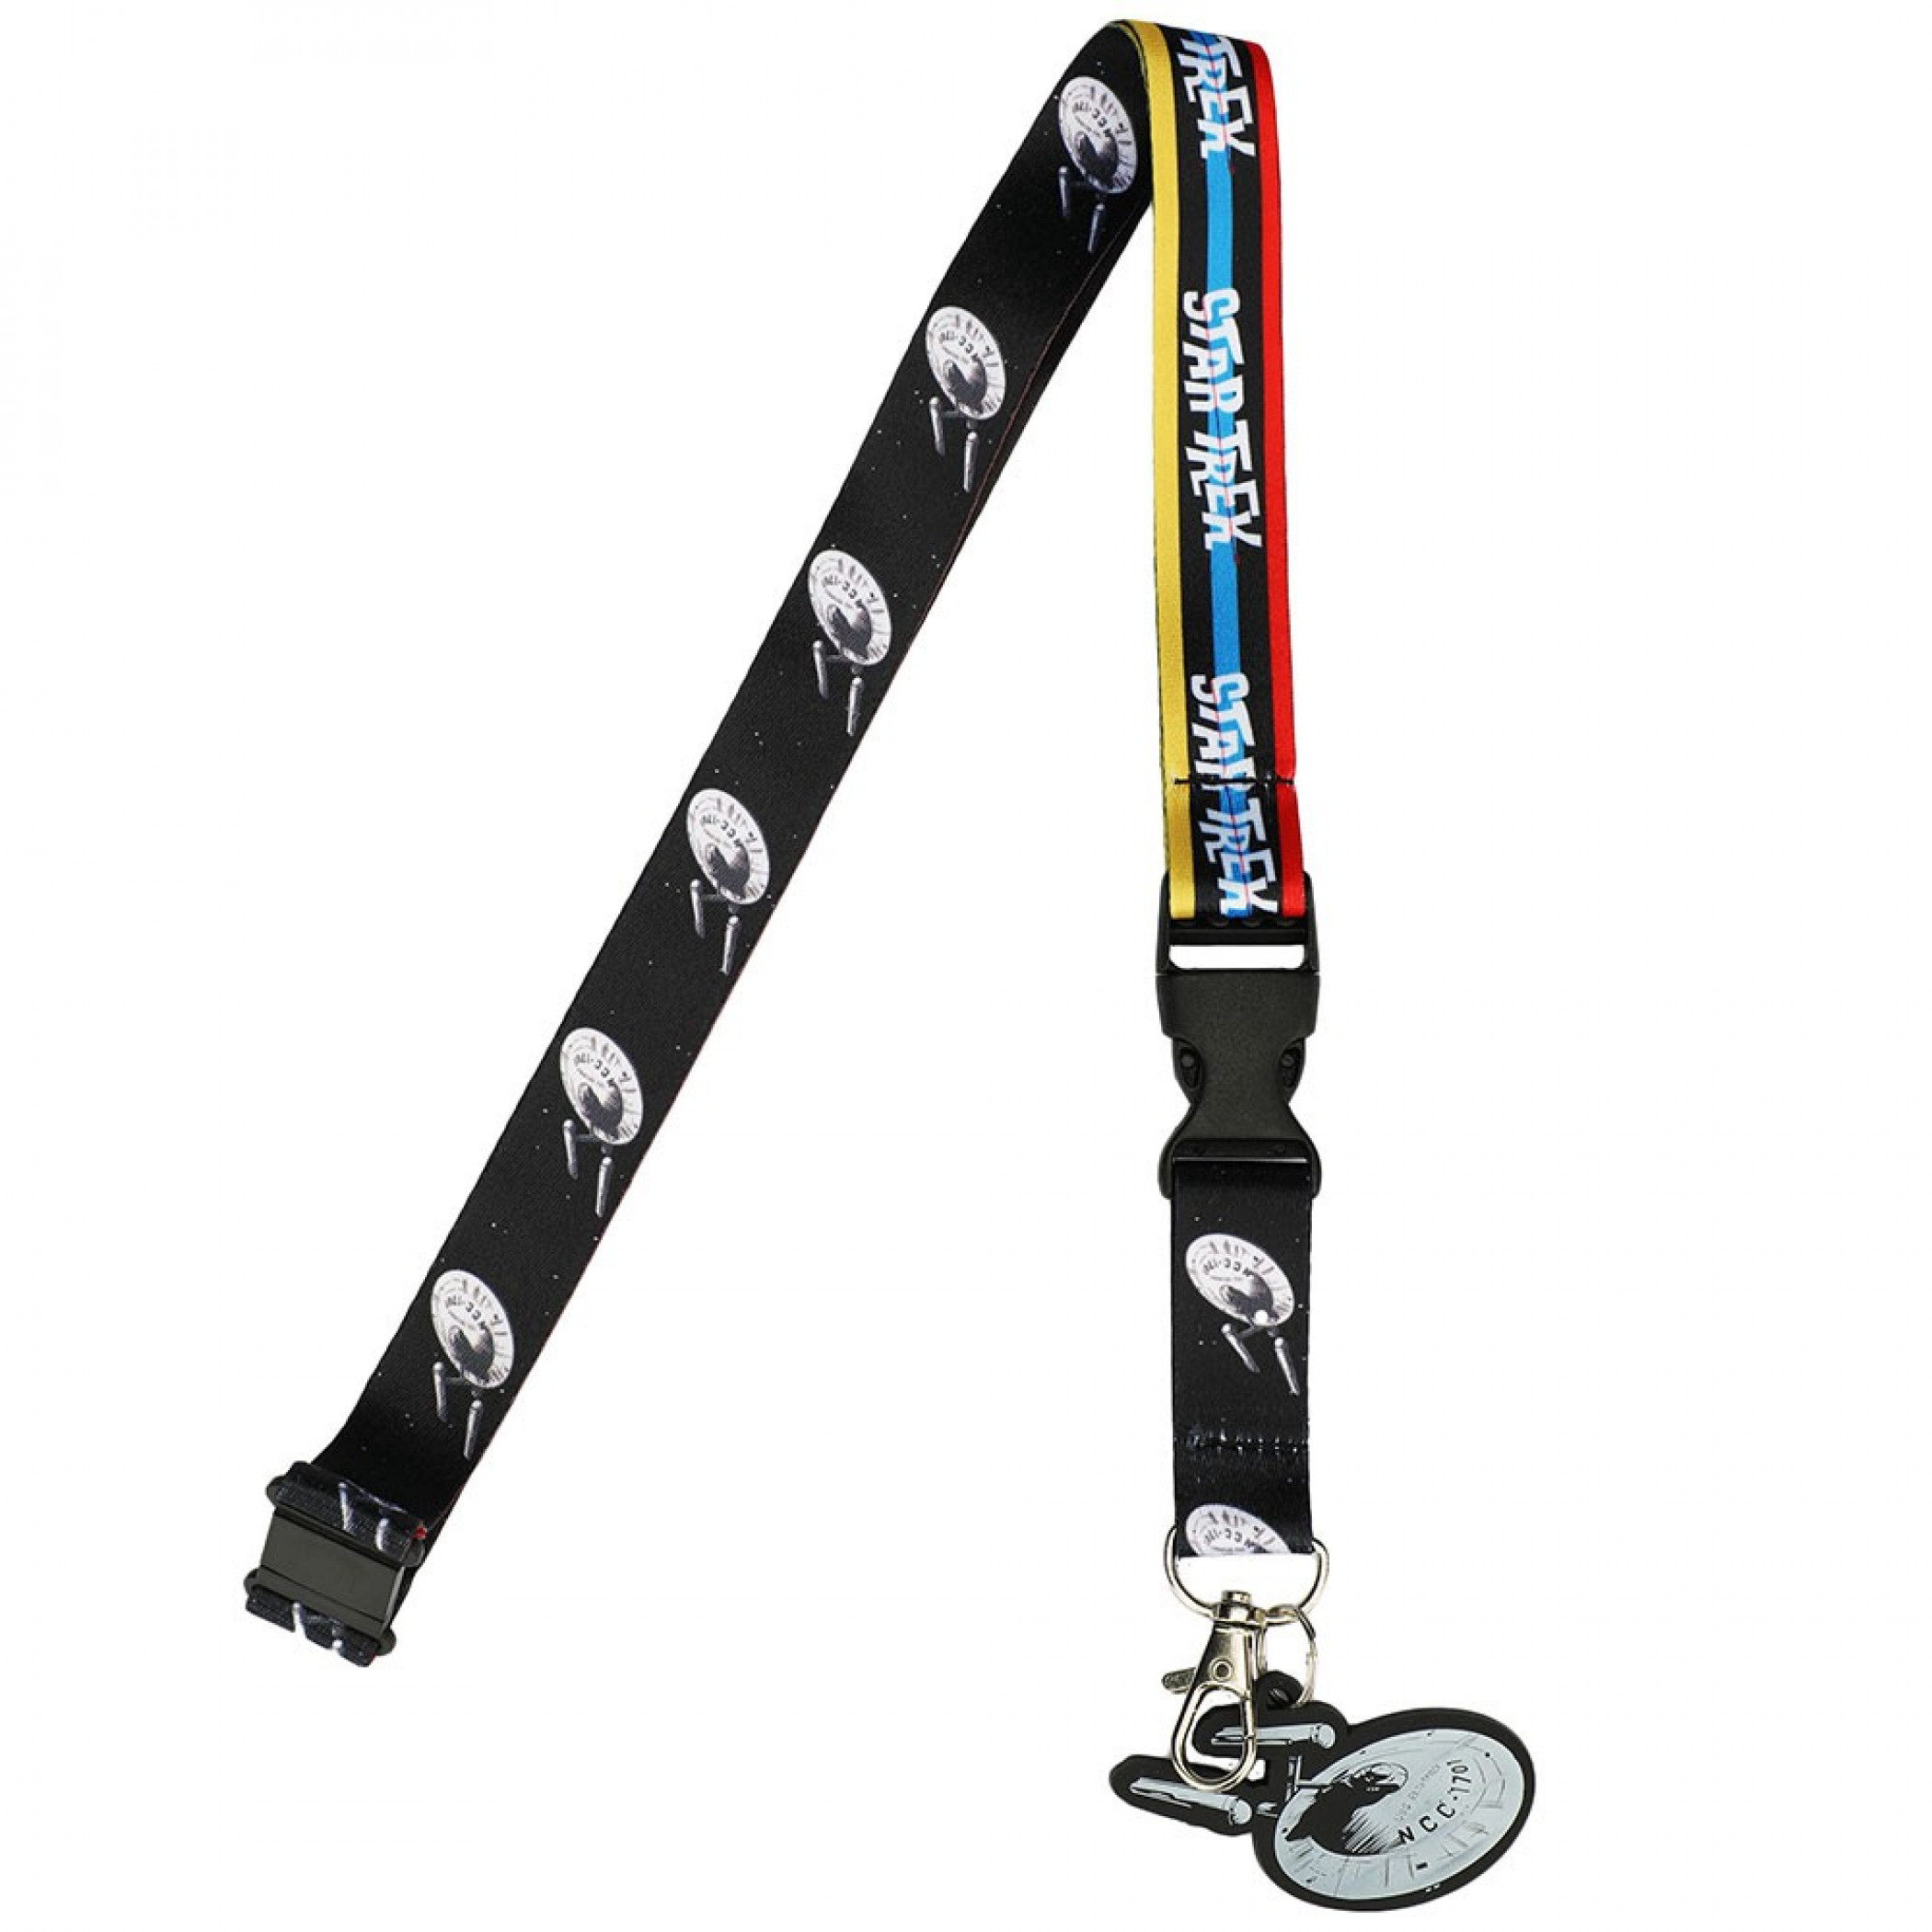 Star Trek Enterprise Repeating Lanyard With Charm and Card Holder